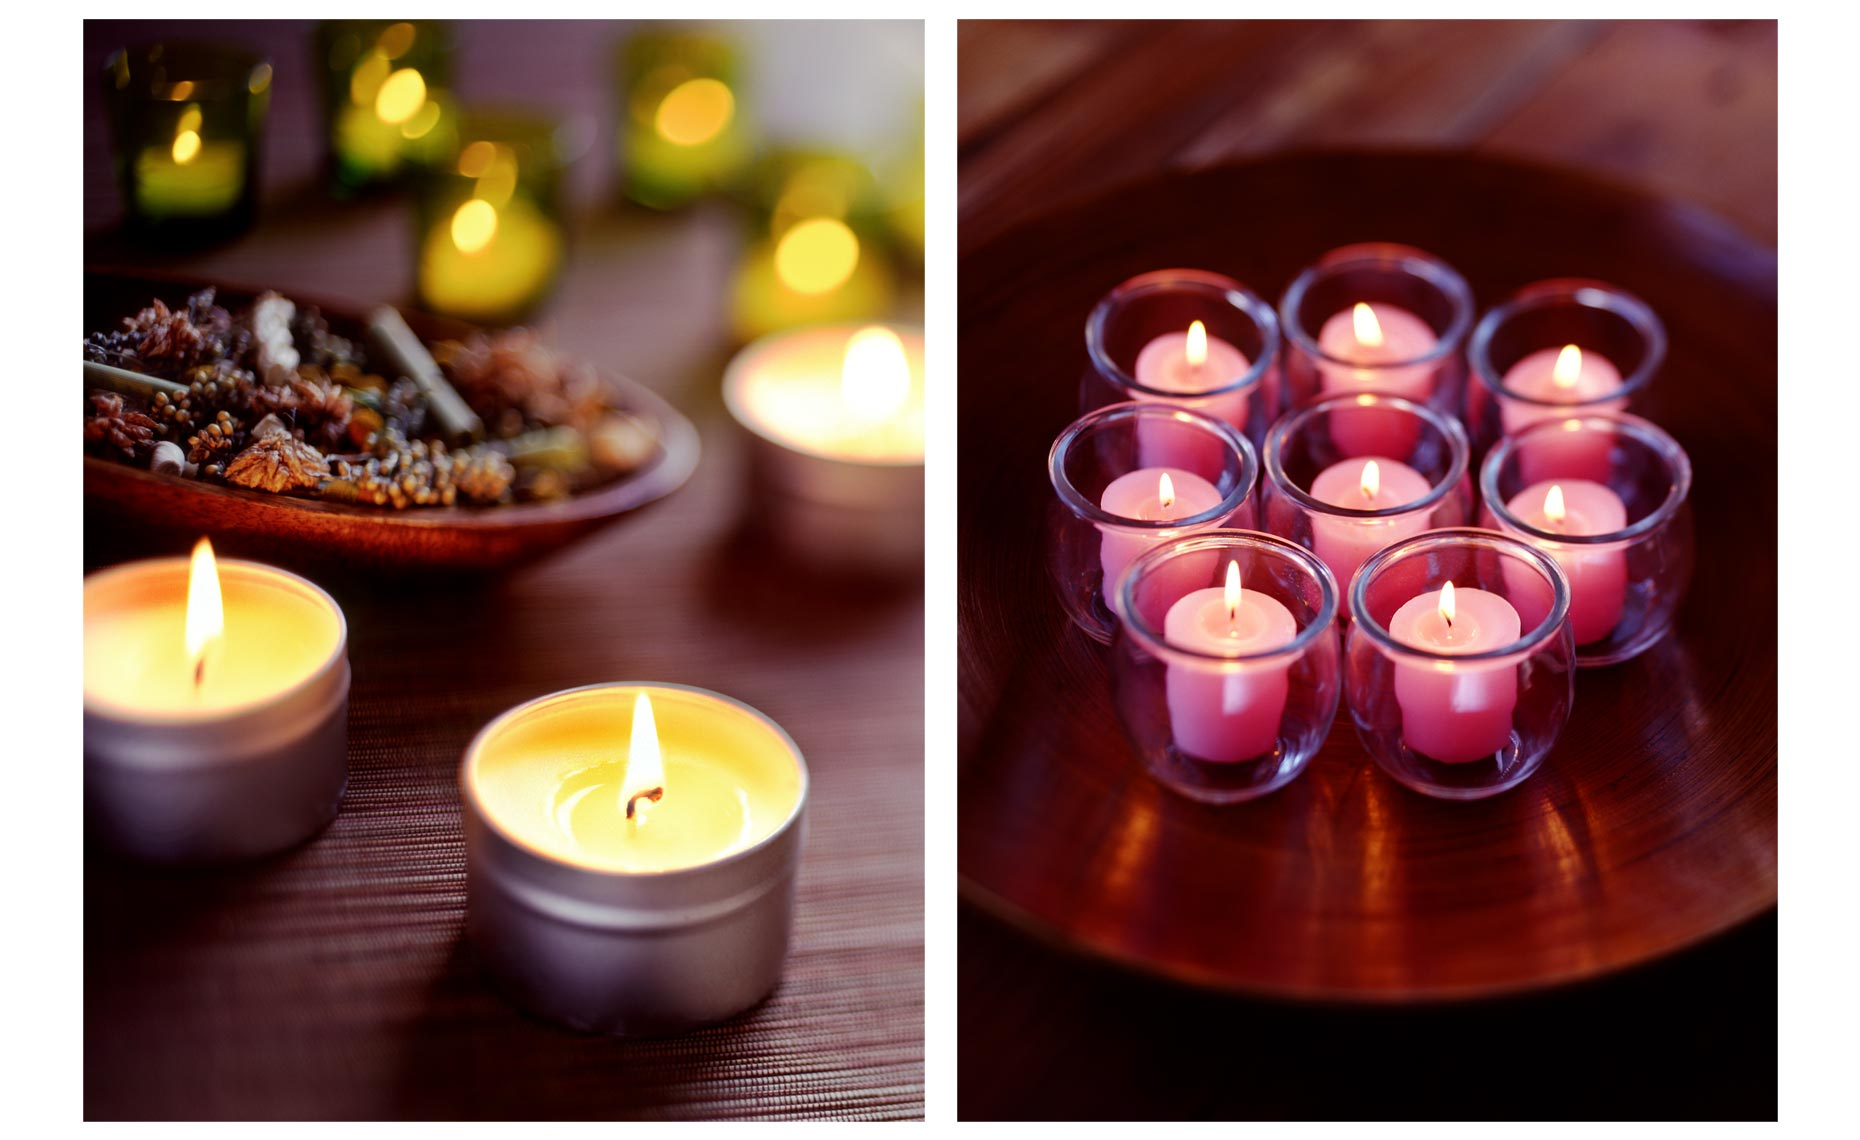 Romantic scenes of candles